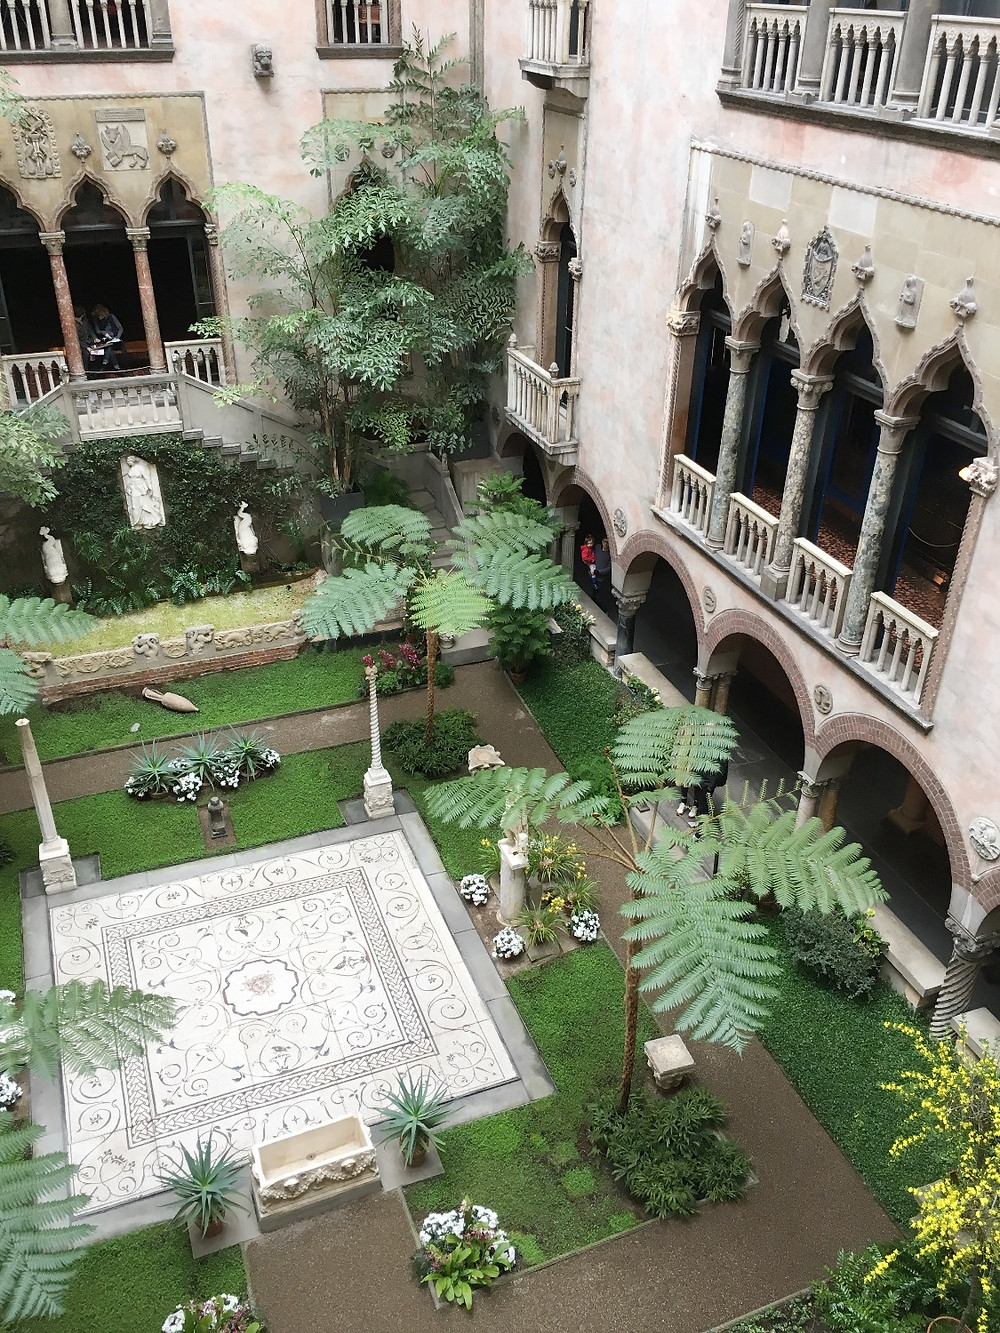 View of the Isabella Stewart Gardner Museum courtyard from the third floor. Photo by Diana Dinverno.